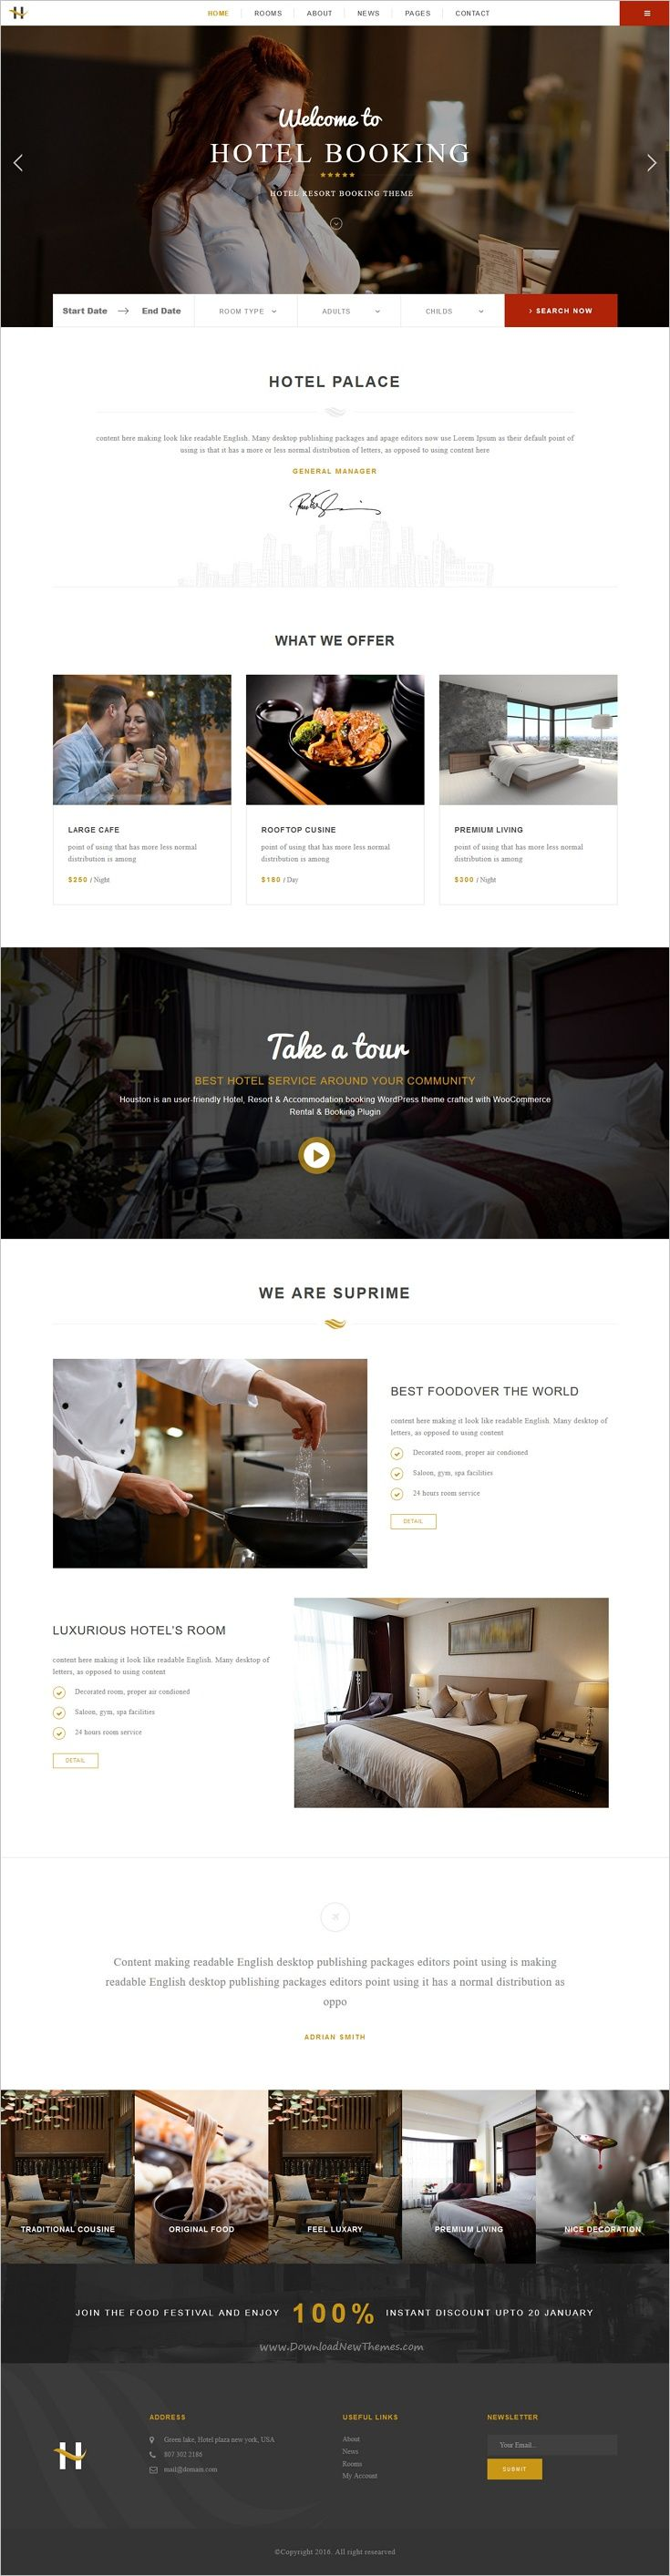 Houston is an user-friendly #Hotel, Resort & #Accommodation booking #WordPress theme crafted with WooCommerce Rental & Booking Plugin, Visual Composer, and Multilingual Ready download now➩ https://themeforest.net/item/houston-online-hotel-resort-accommodation-booking-woocommerce-theme/18843216?ref=Datasata